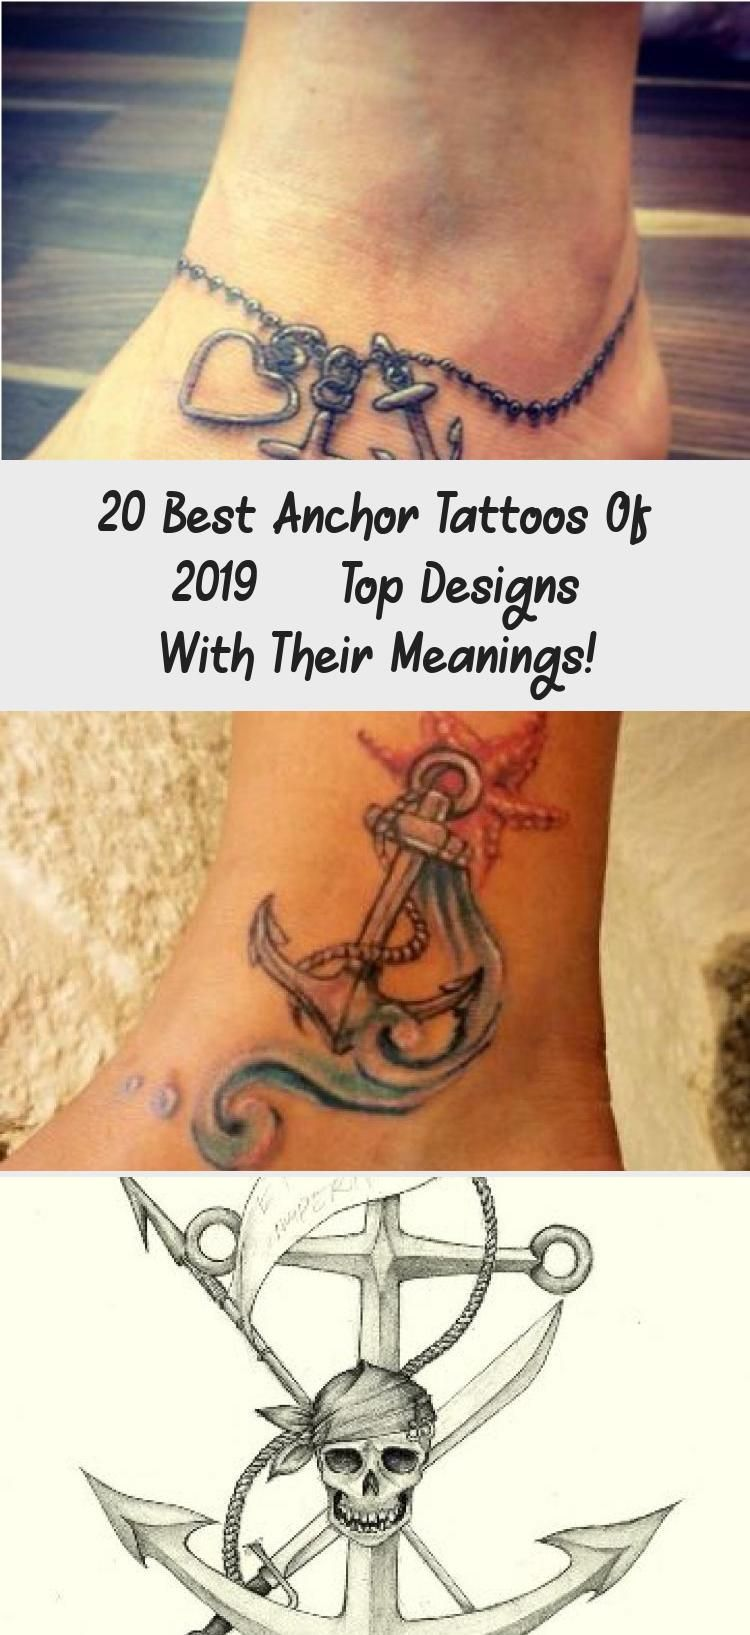 20 Best Anchor Tattoos of 2019 Top Designs with their